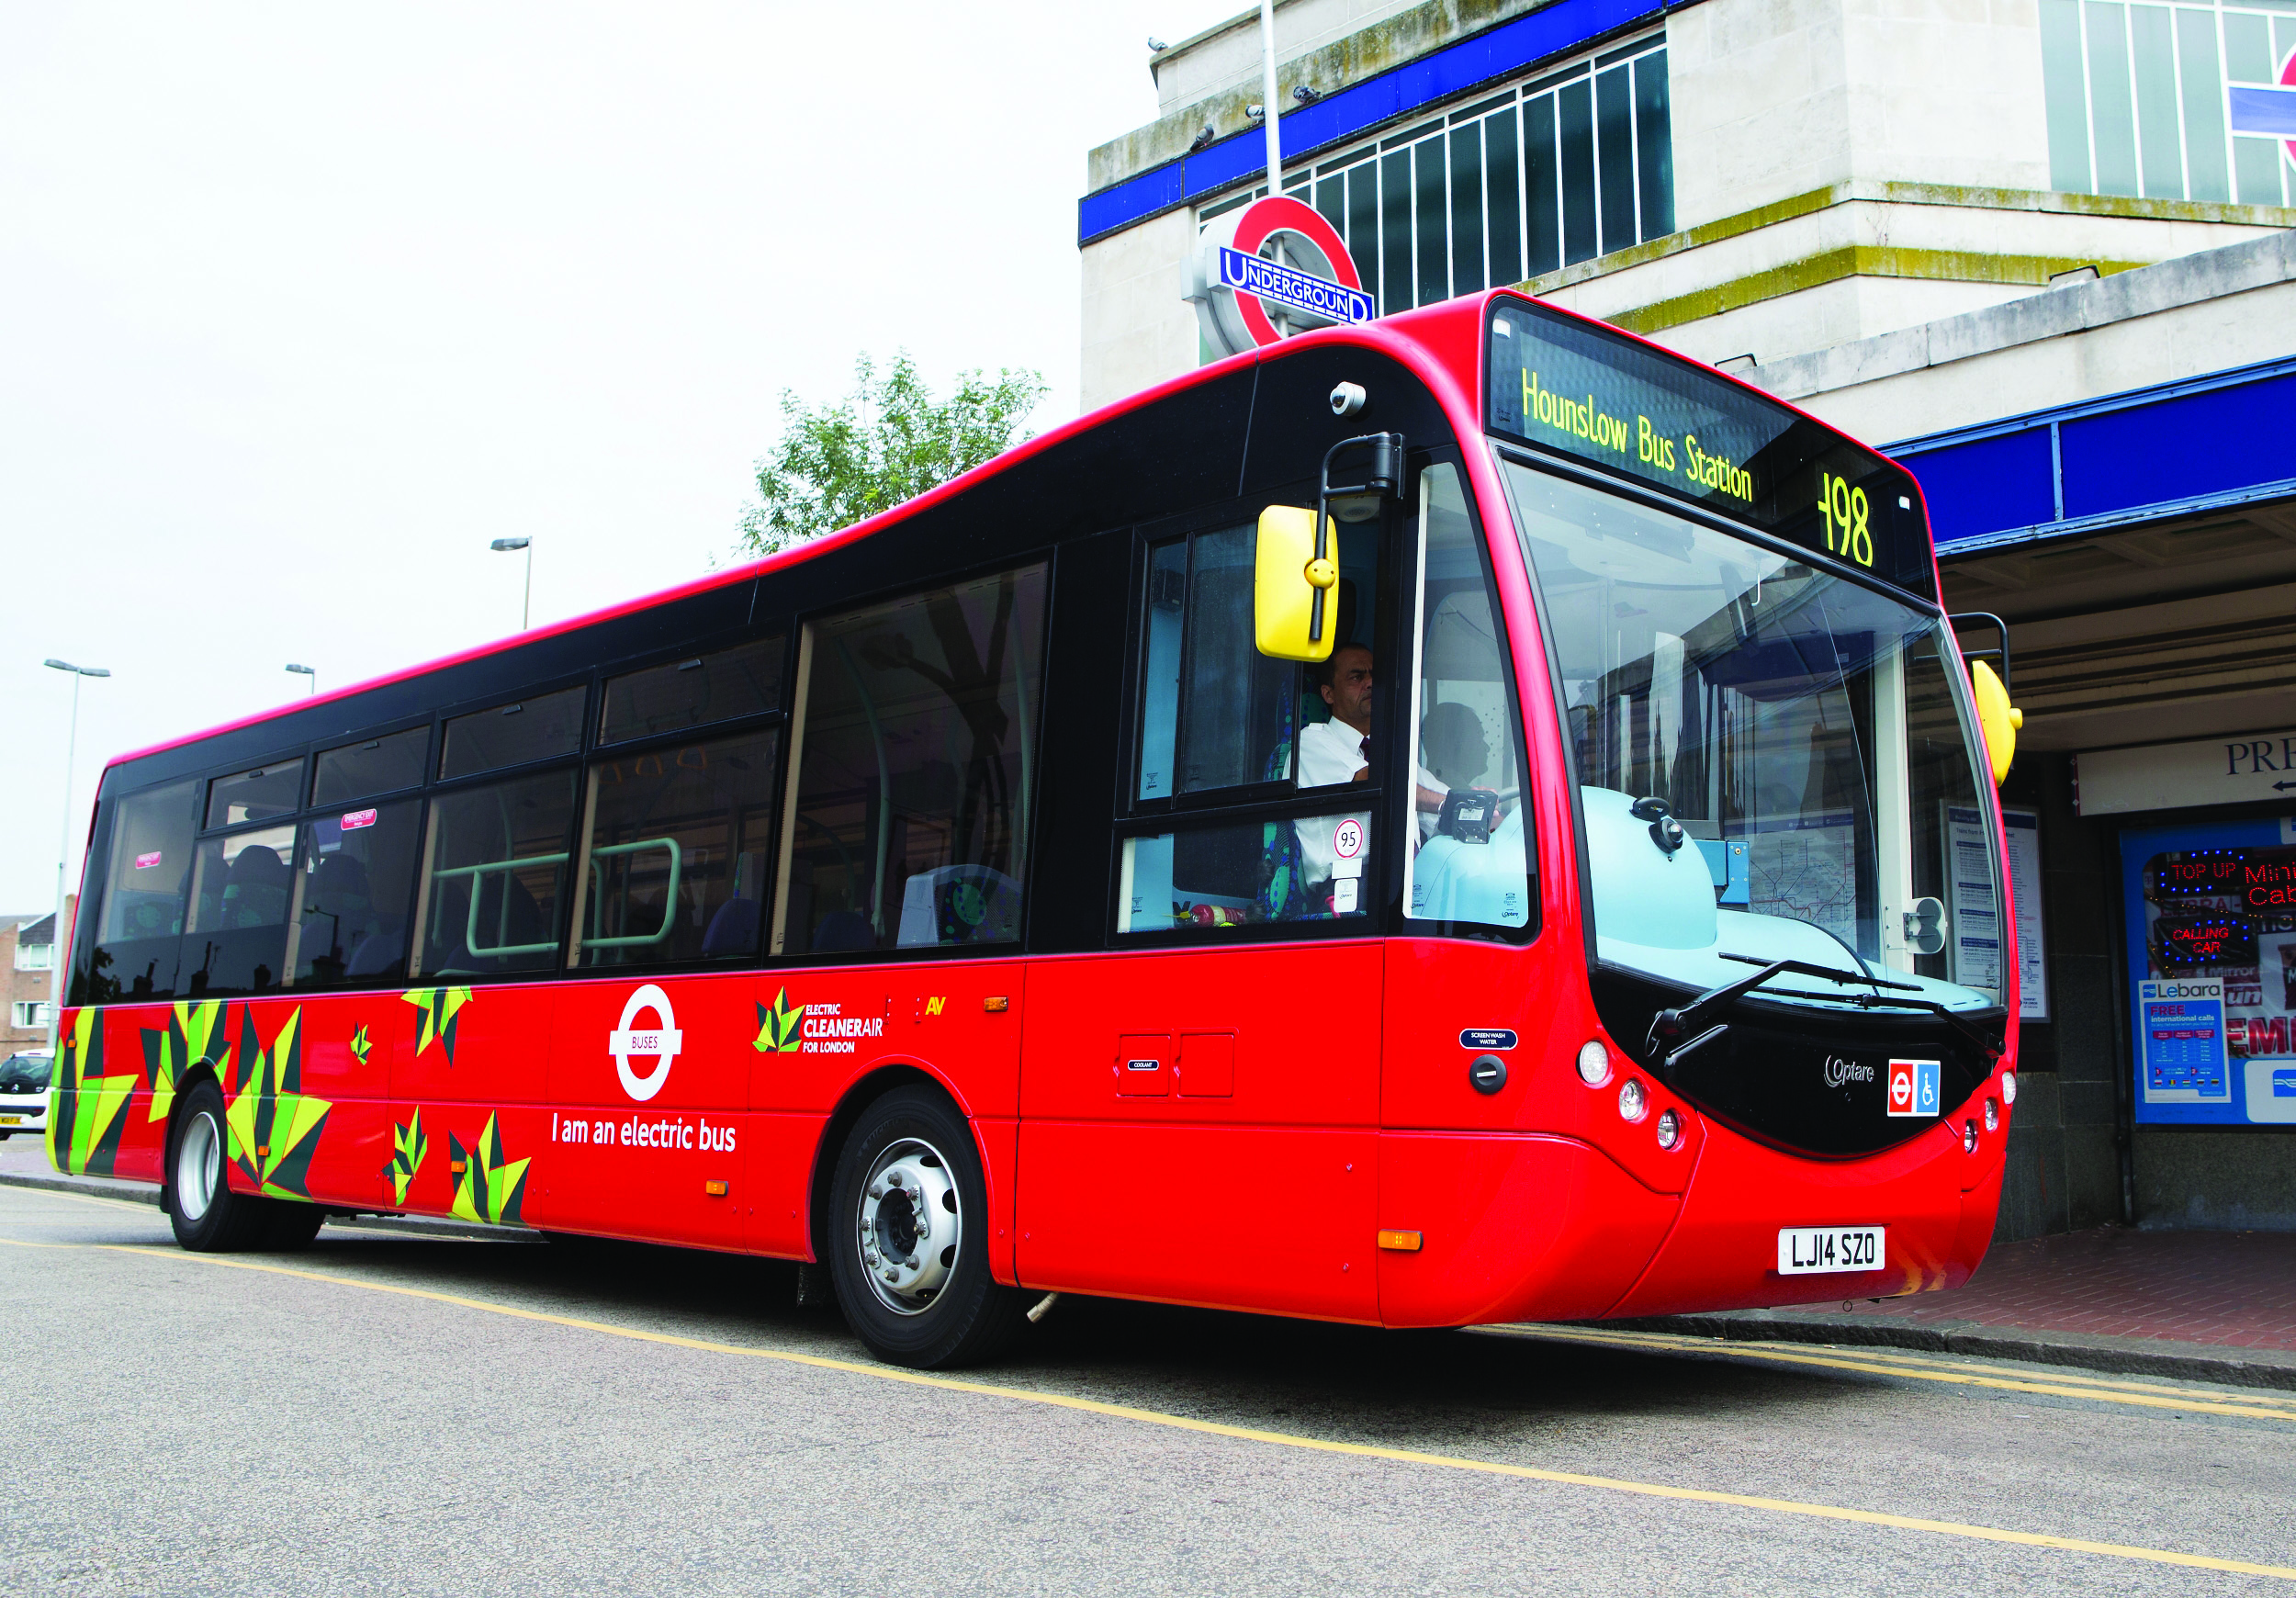 Metro Bus Cleaner : Following the journey of green bus transport business